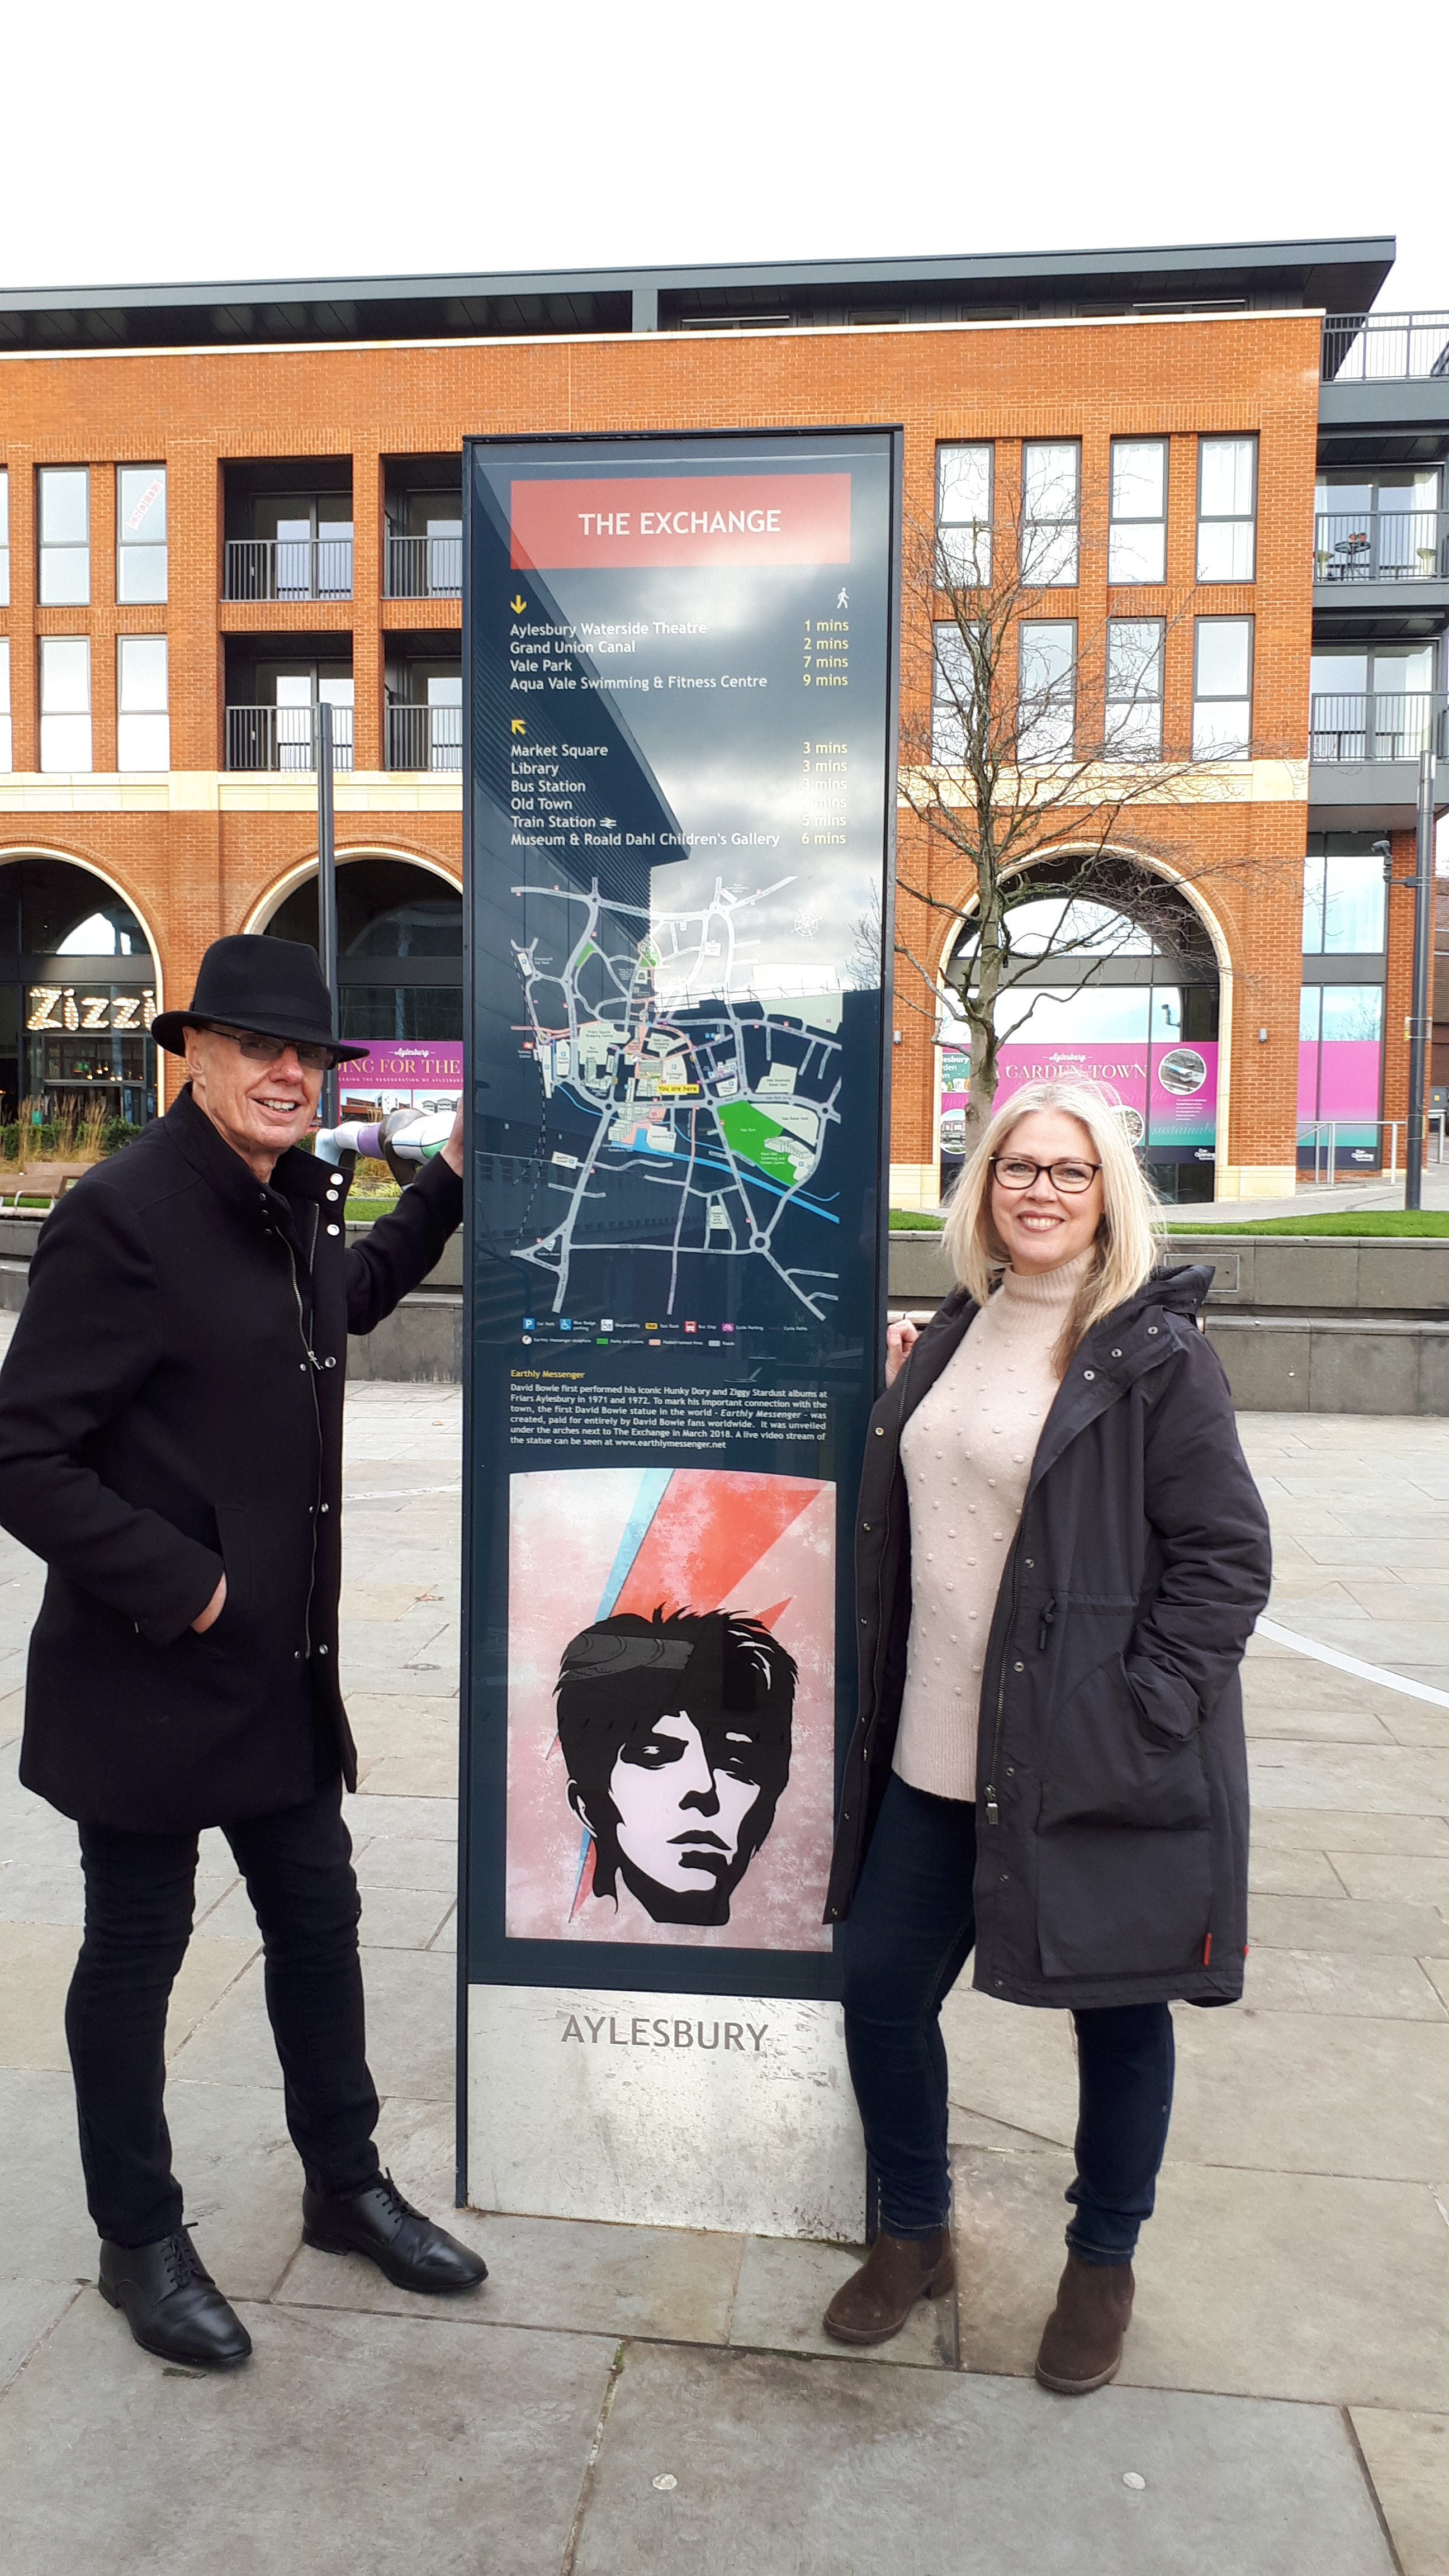 David Stopps and Cllr Julie Ward at eh the information pillar by The Exchange